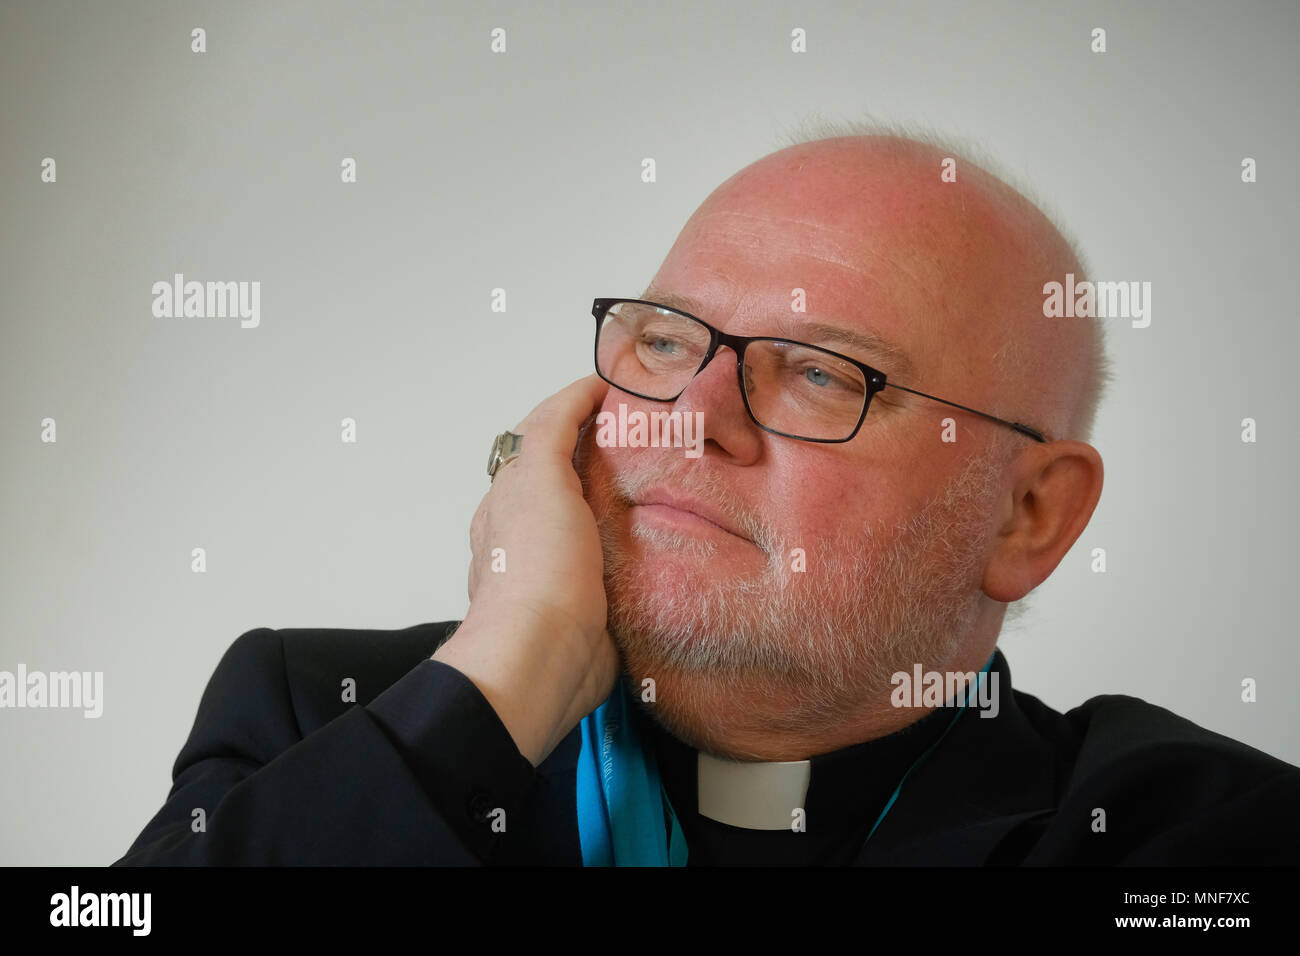 Roman catholic Cardinal REINHARD MARX, chairman of the Catholic German Bishops' Conference, during the 101st Katholikentag on May 13th 2018 in Münster, Germany Stock Photo